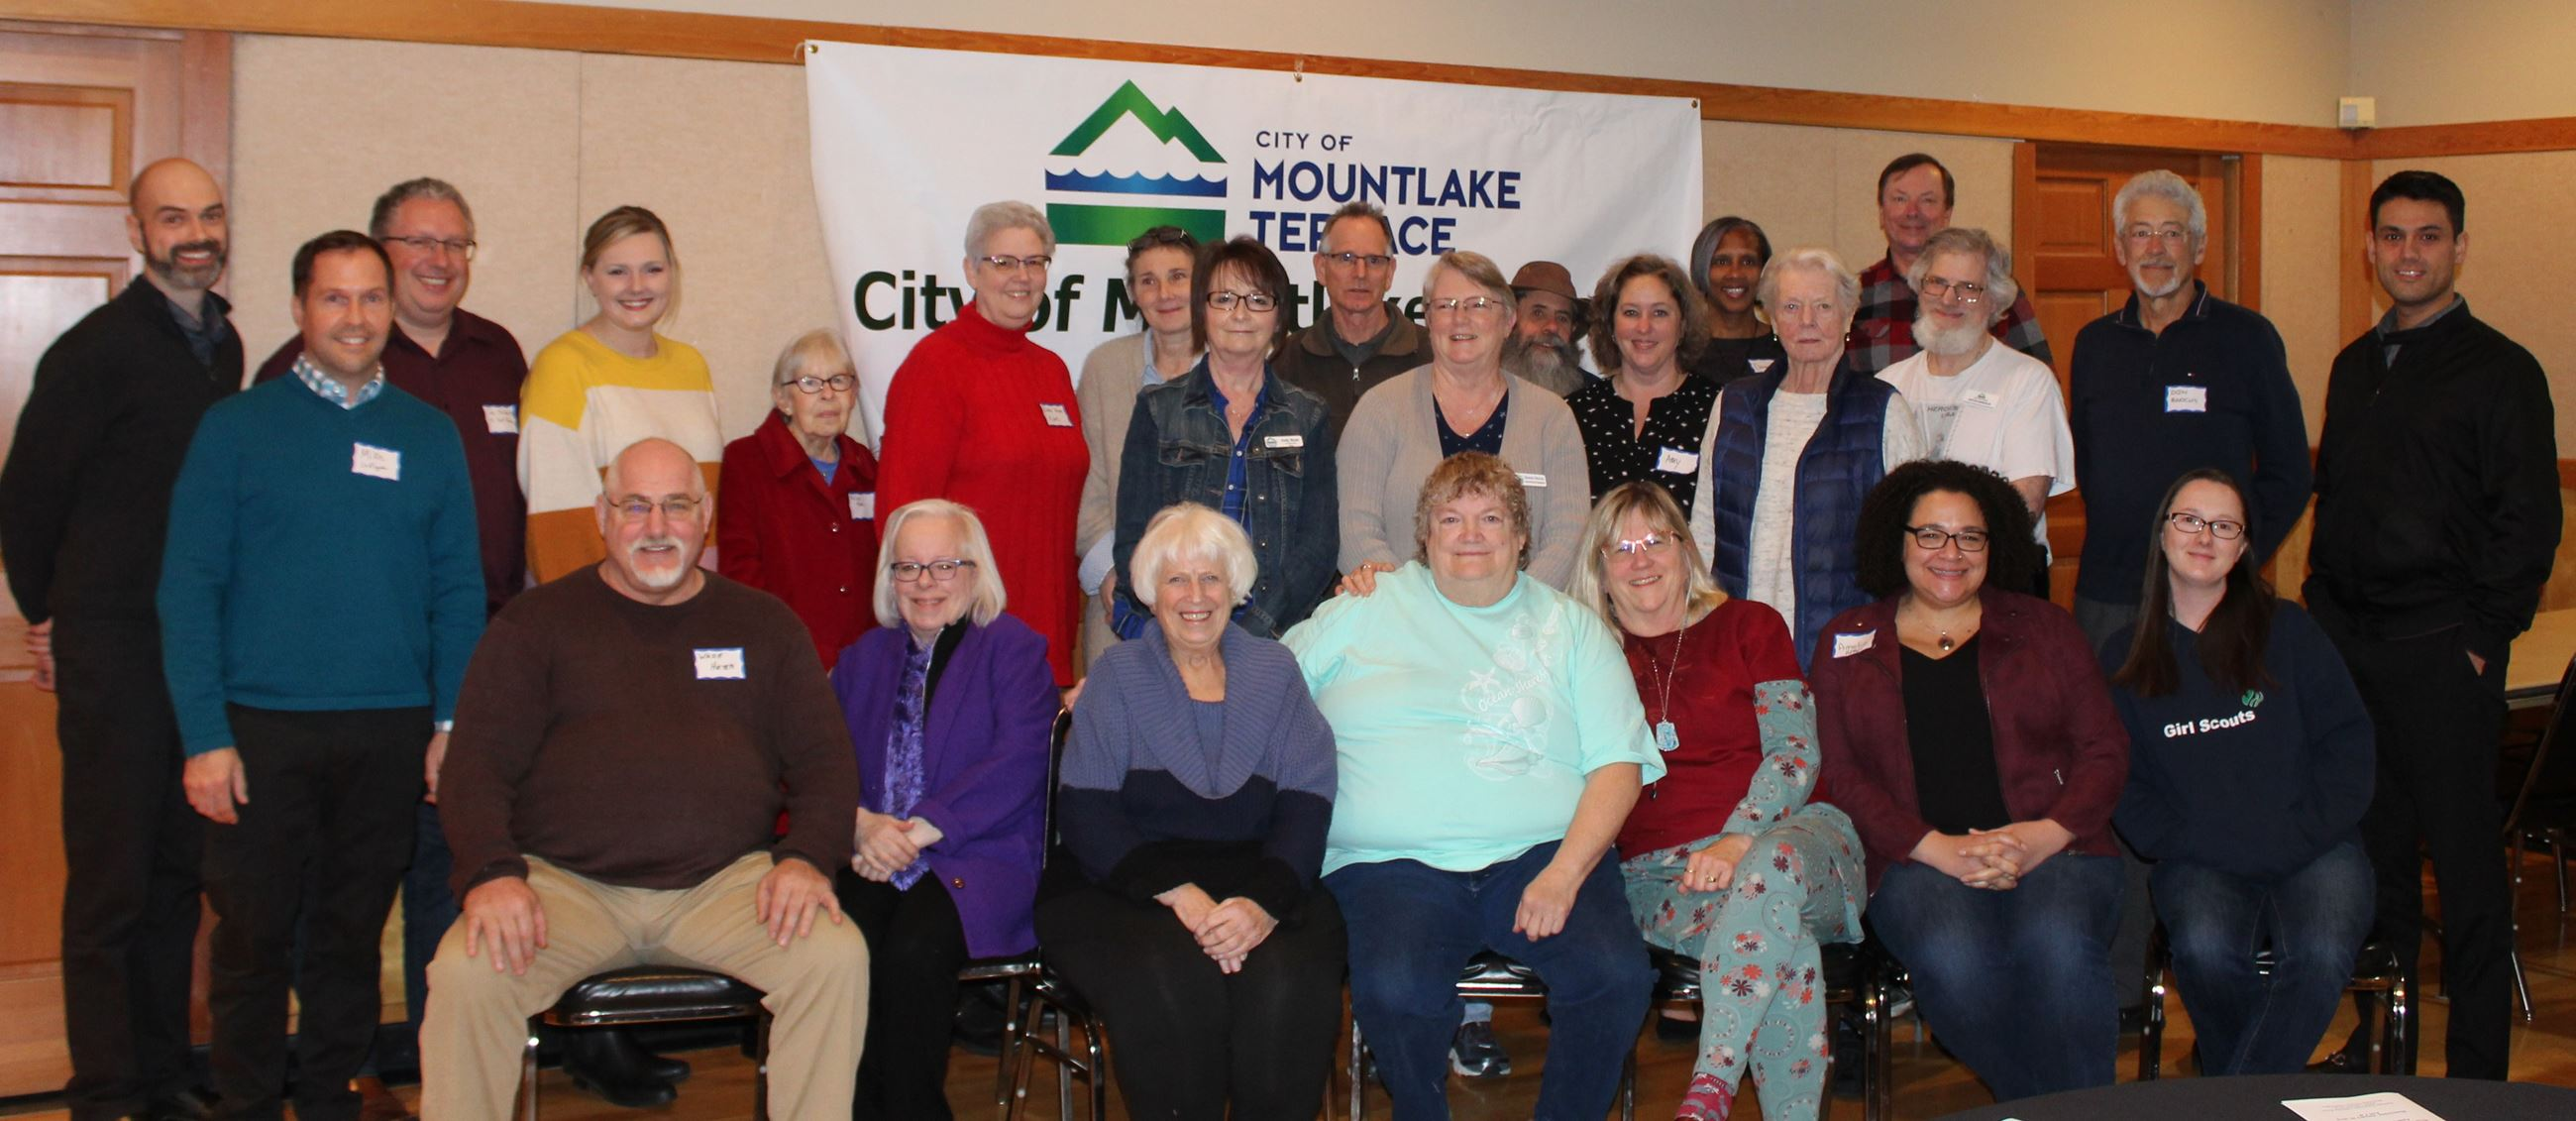 2019 Boards and Commissions Recognition Event Attendees